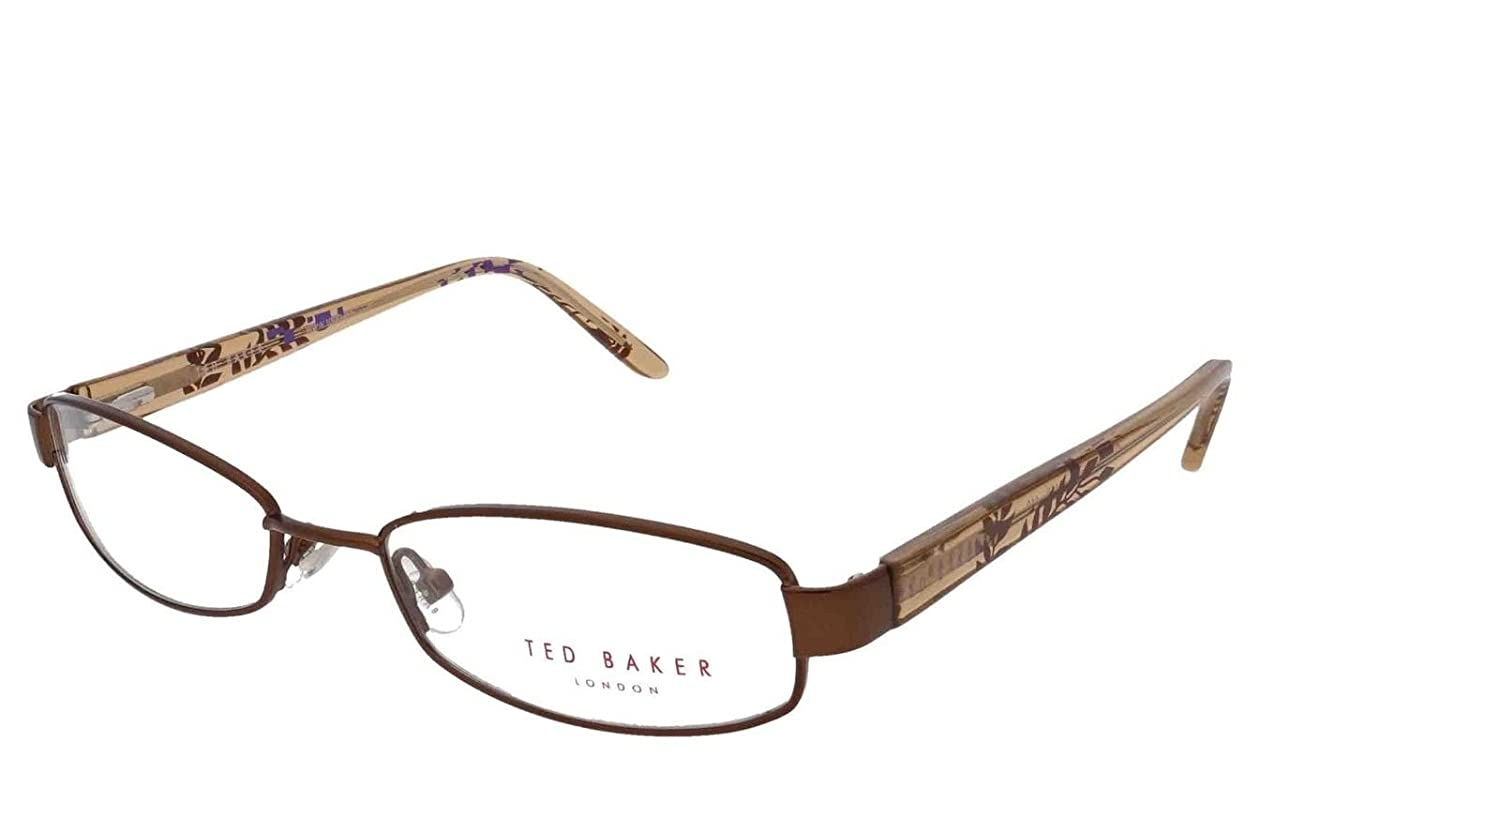 c11a08738 TED BAKER CINNAMON GIRL 2156 118 Glasses Spectacles Eyeglasses + Case +  Lense Cloth  Amazon.co.uk  Clothing